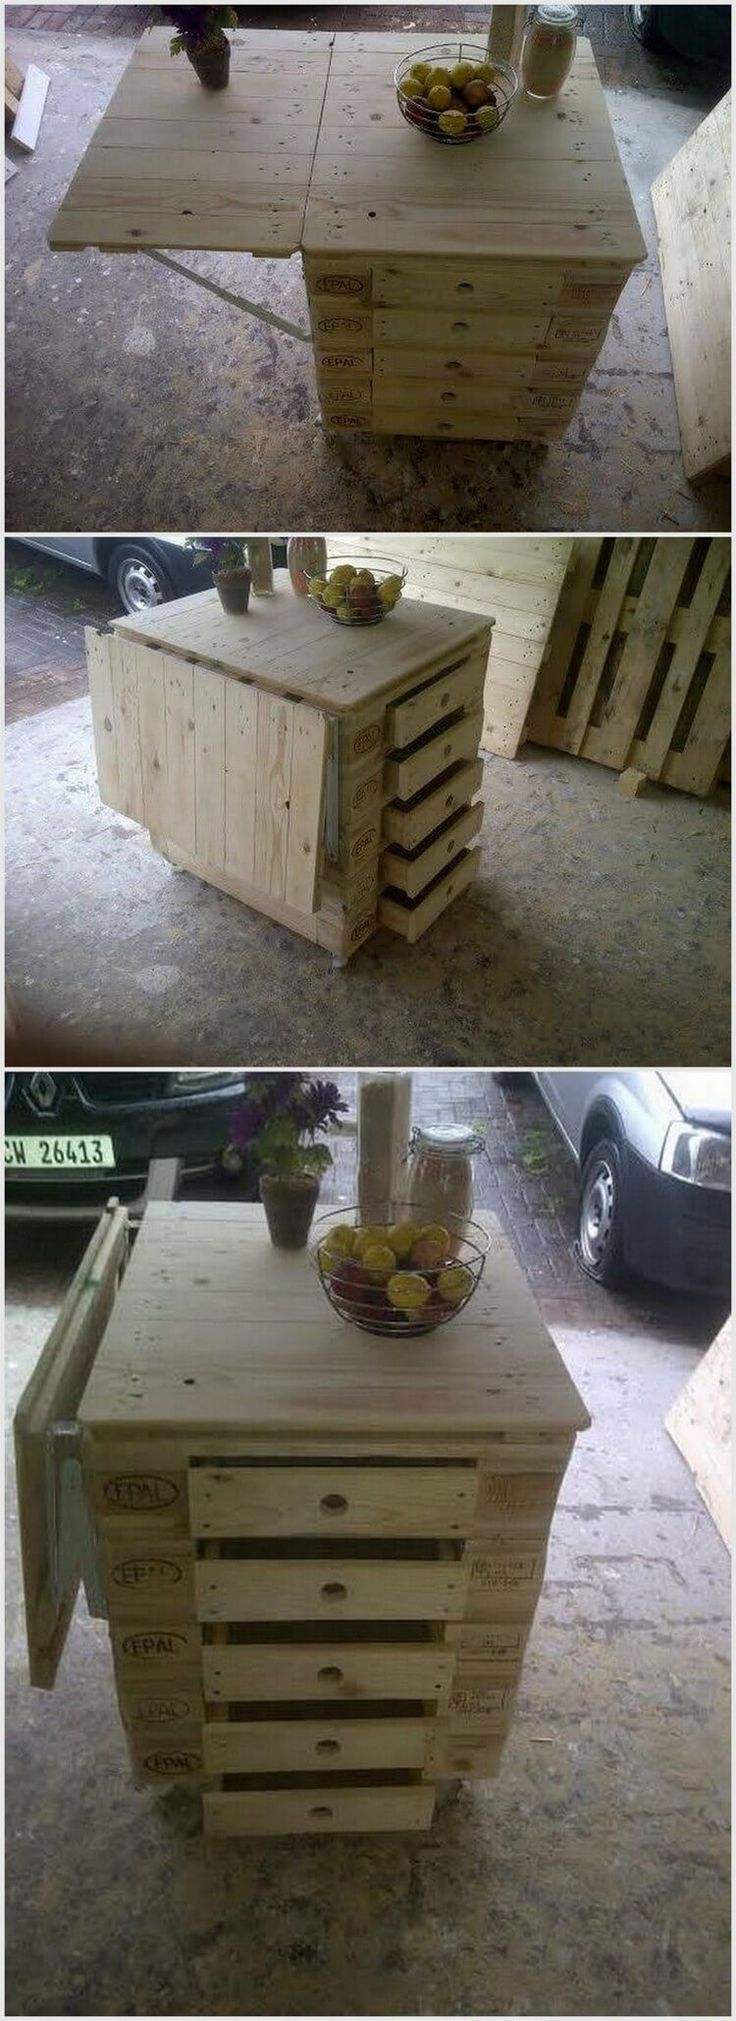 This project of pallet wood is very useful as it has a big board which is easy to fold. You can use it as a table as well. This pallet wood project contains five drawers. You can use it as a computer or end table. You can also put it in your kitchen.